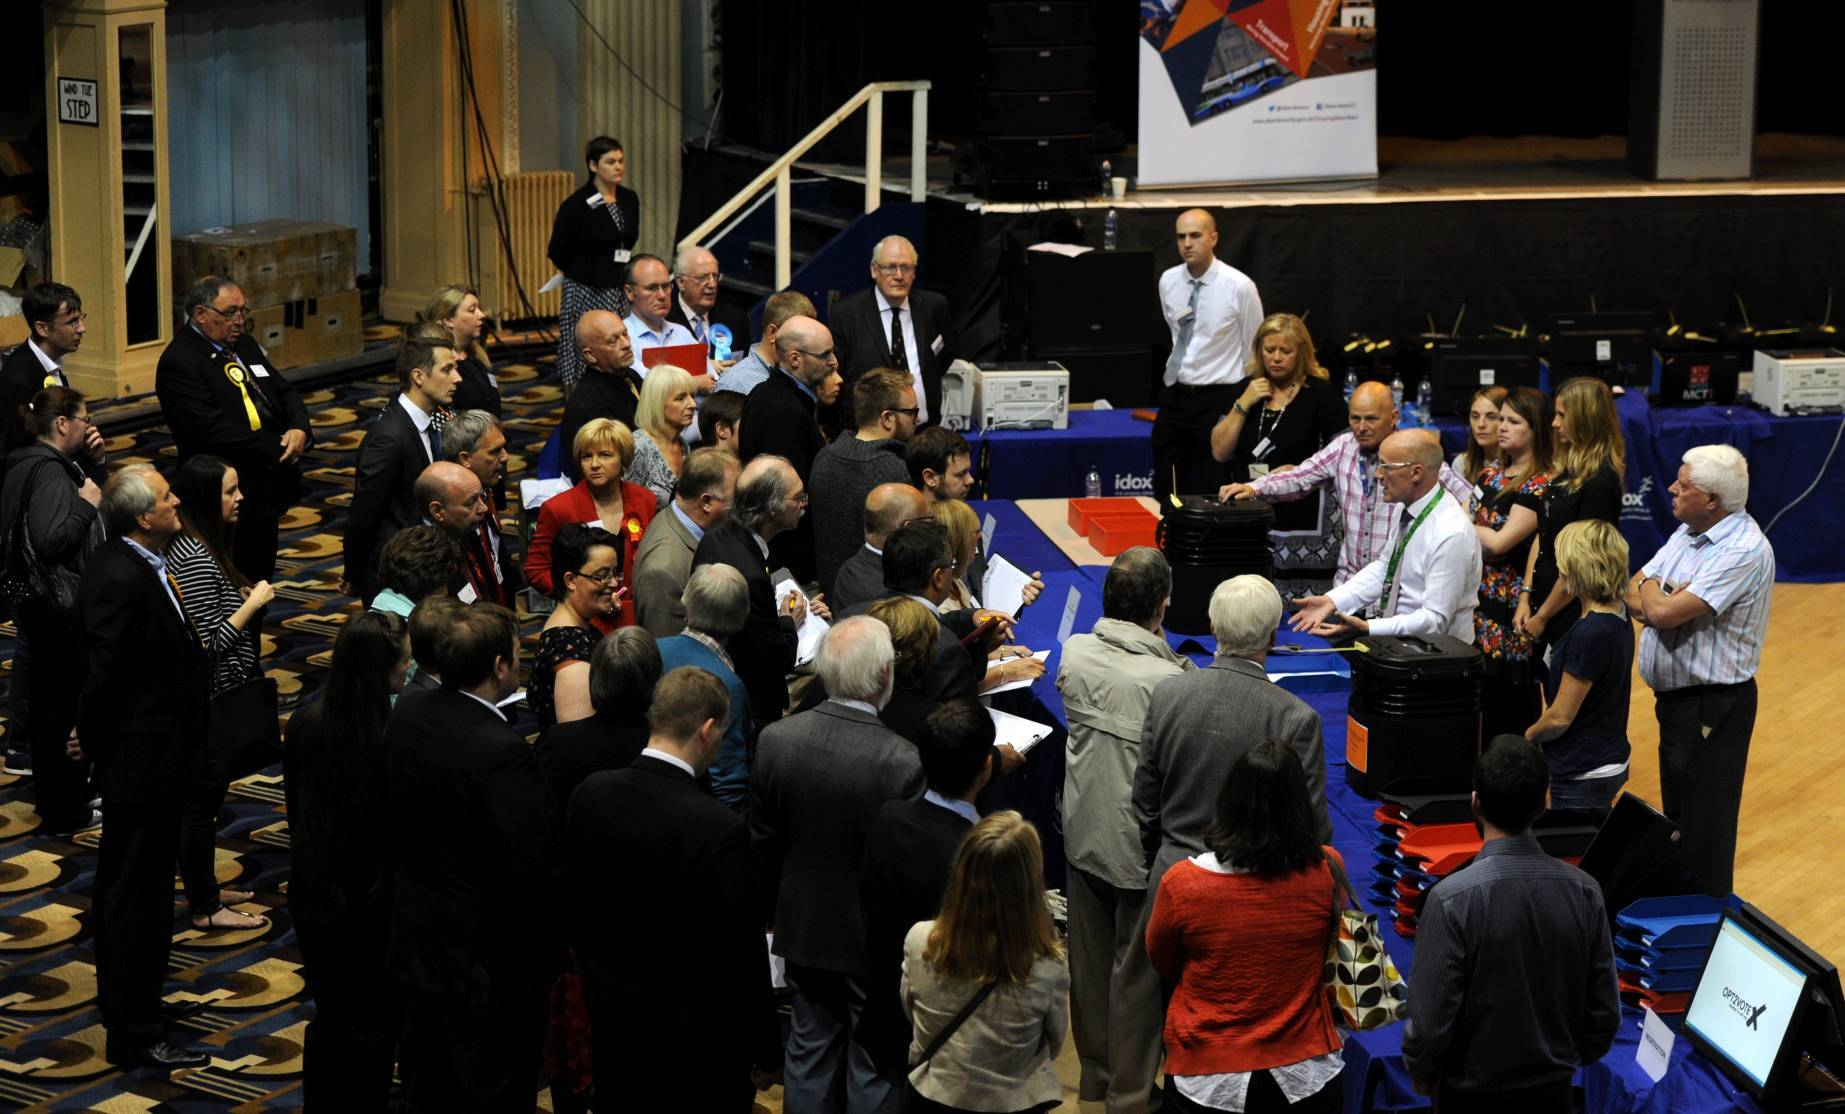 The by-election was triggered after Kirsty Blackman and Callum McCaig became MPs.